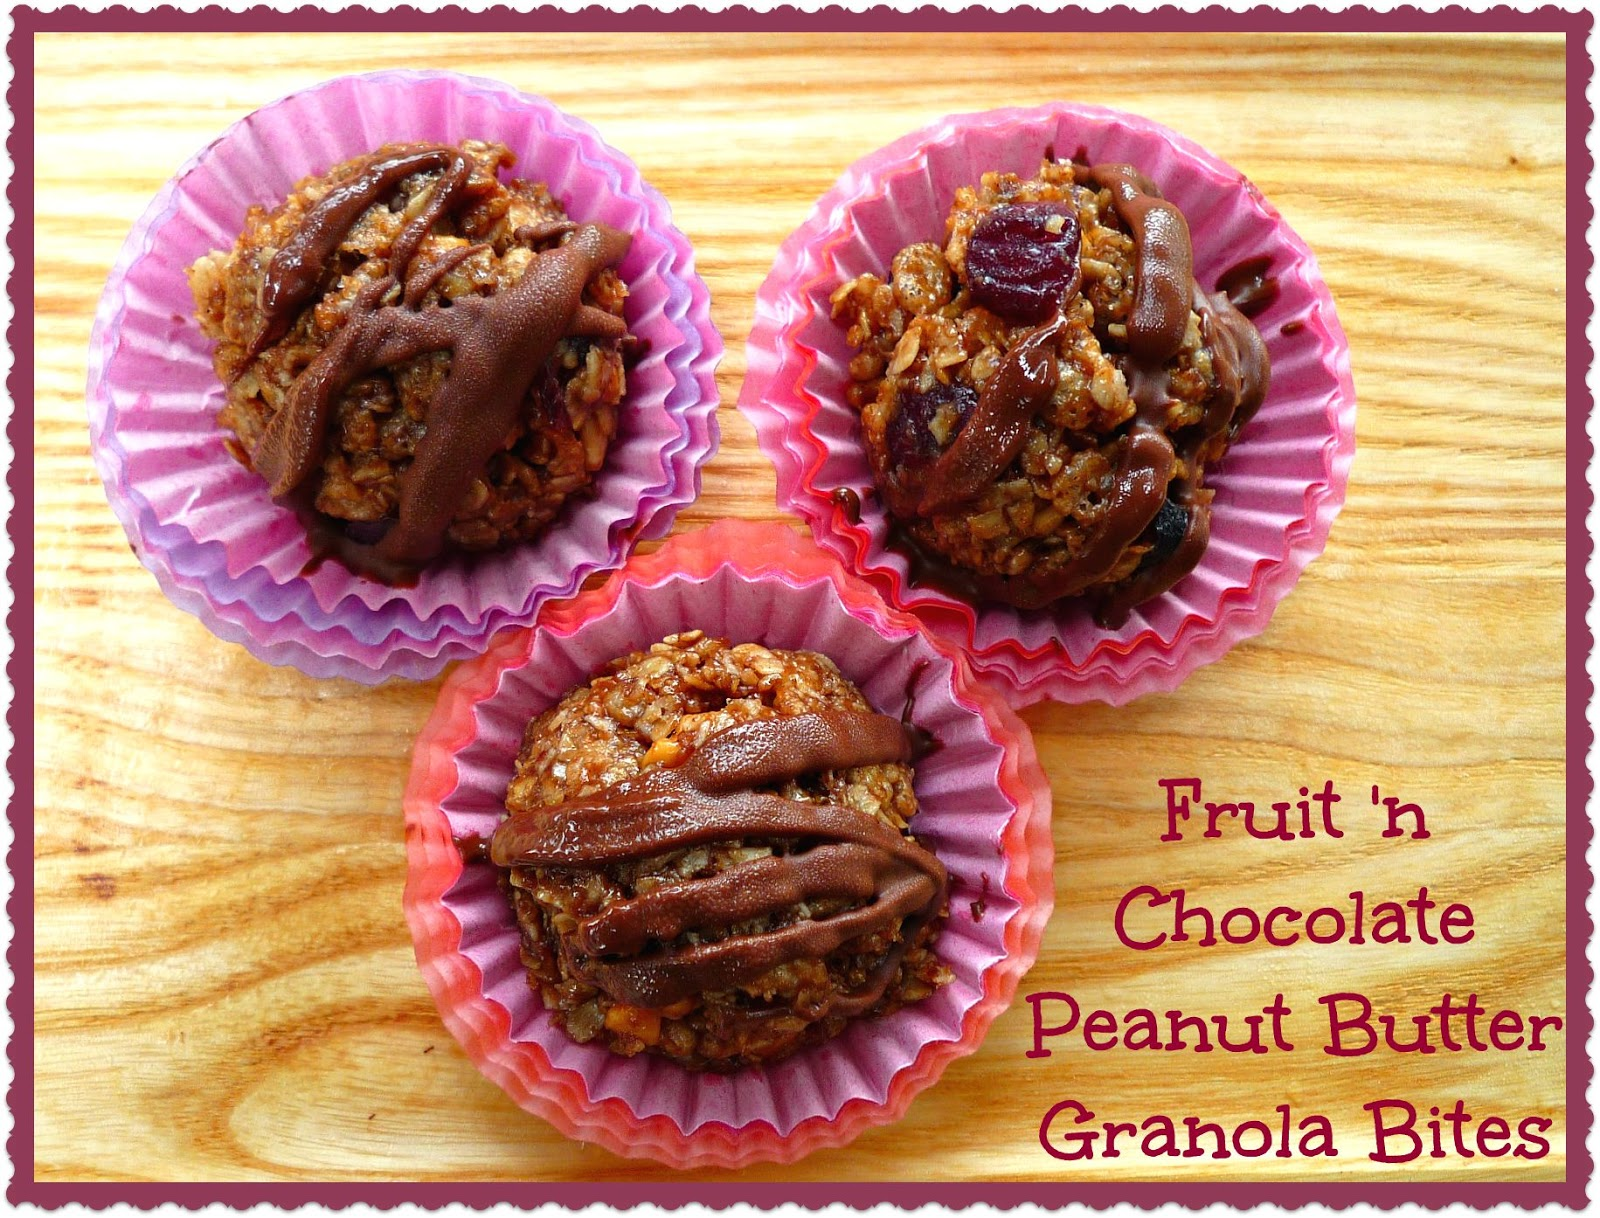 ... ...Featuring Fruit 'n Chocolate Peanut Butter Granola Bites